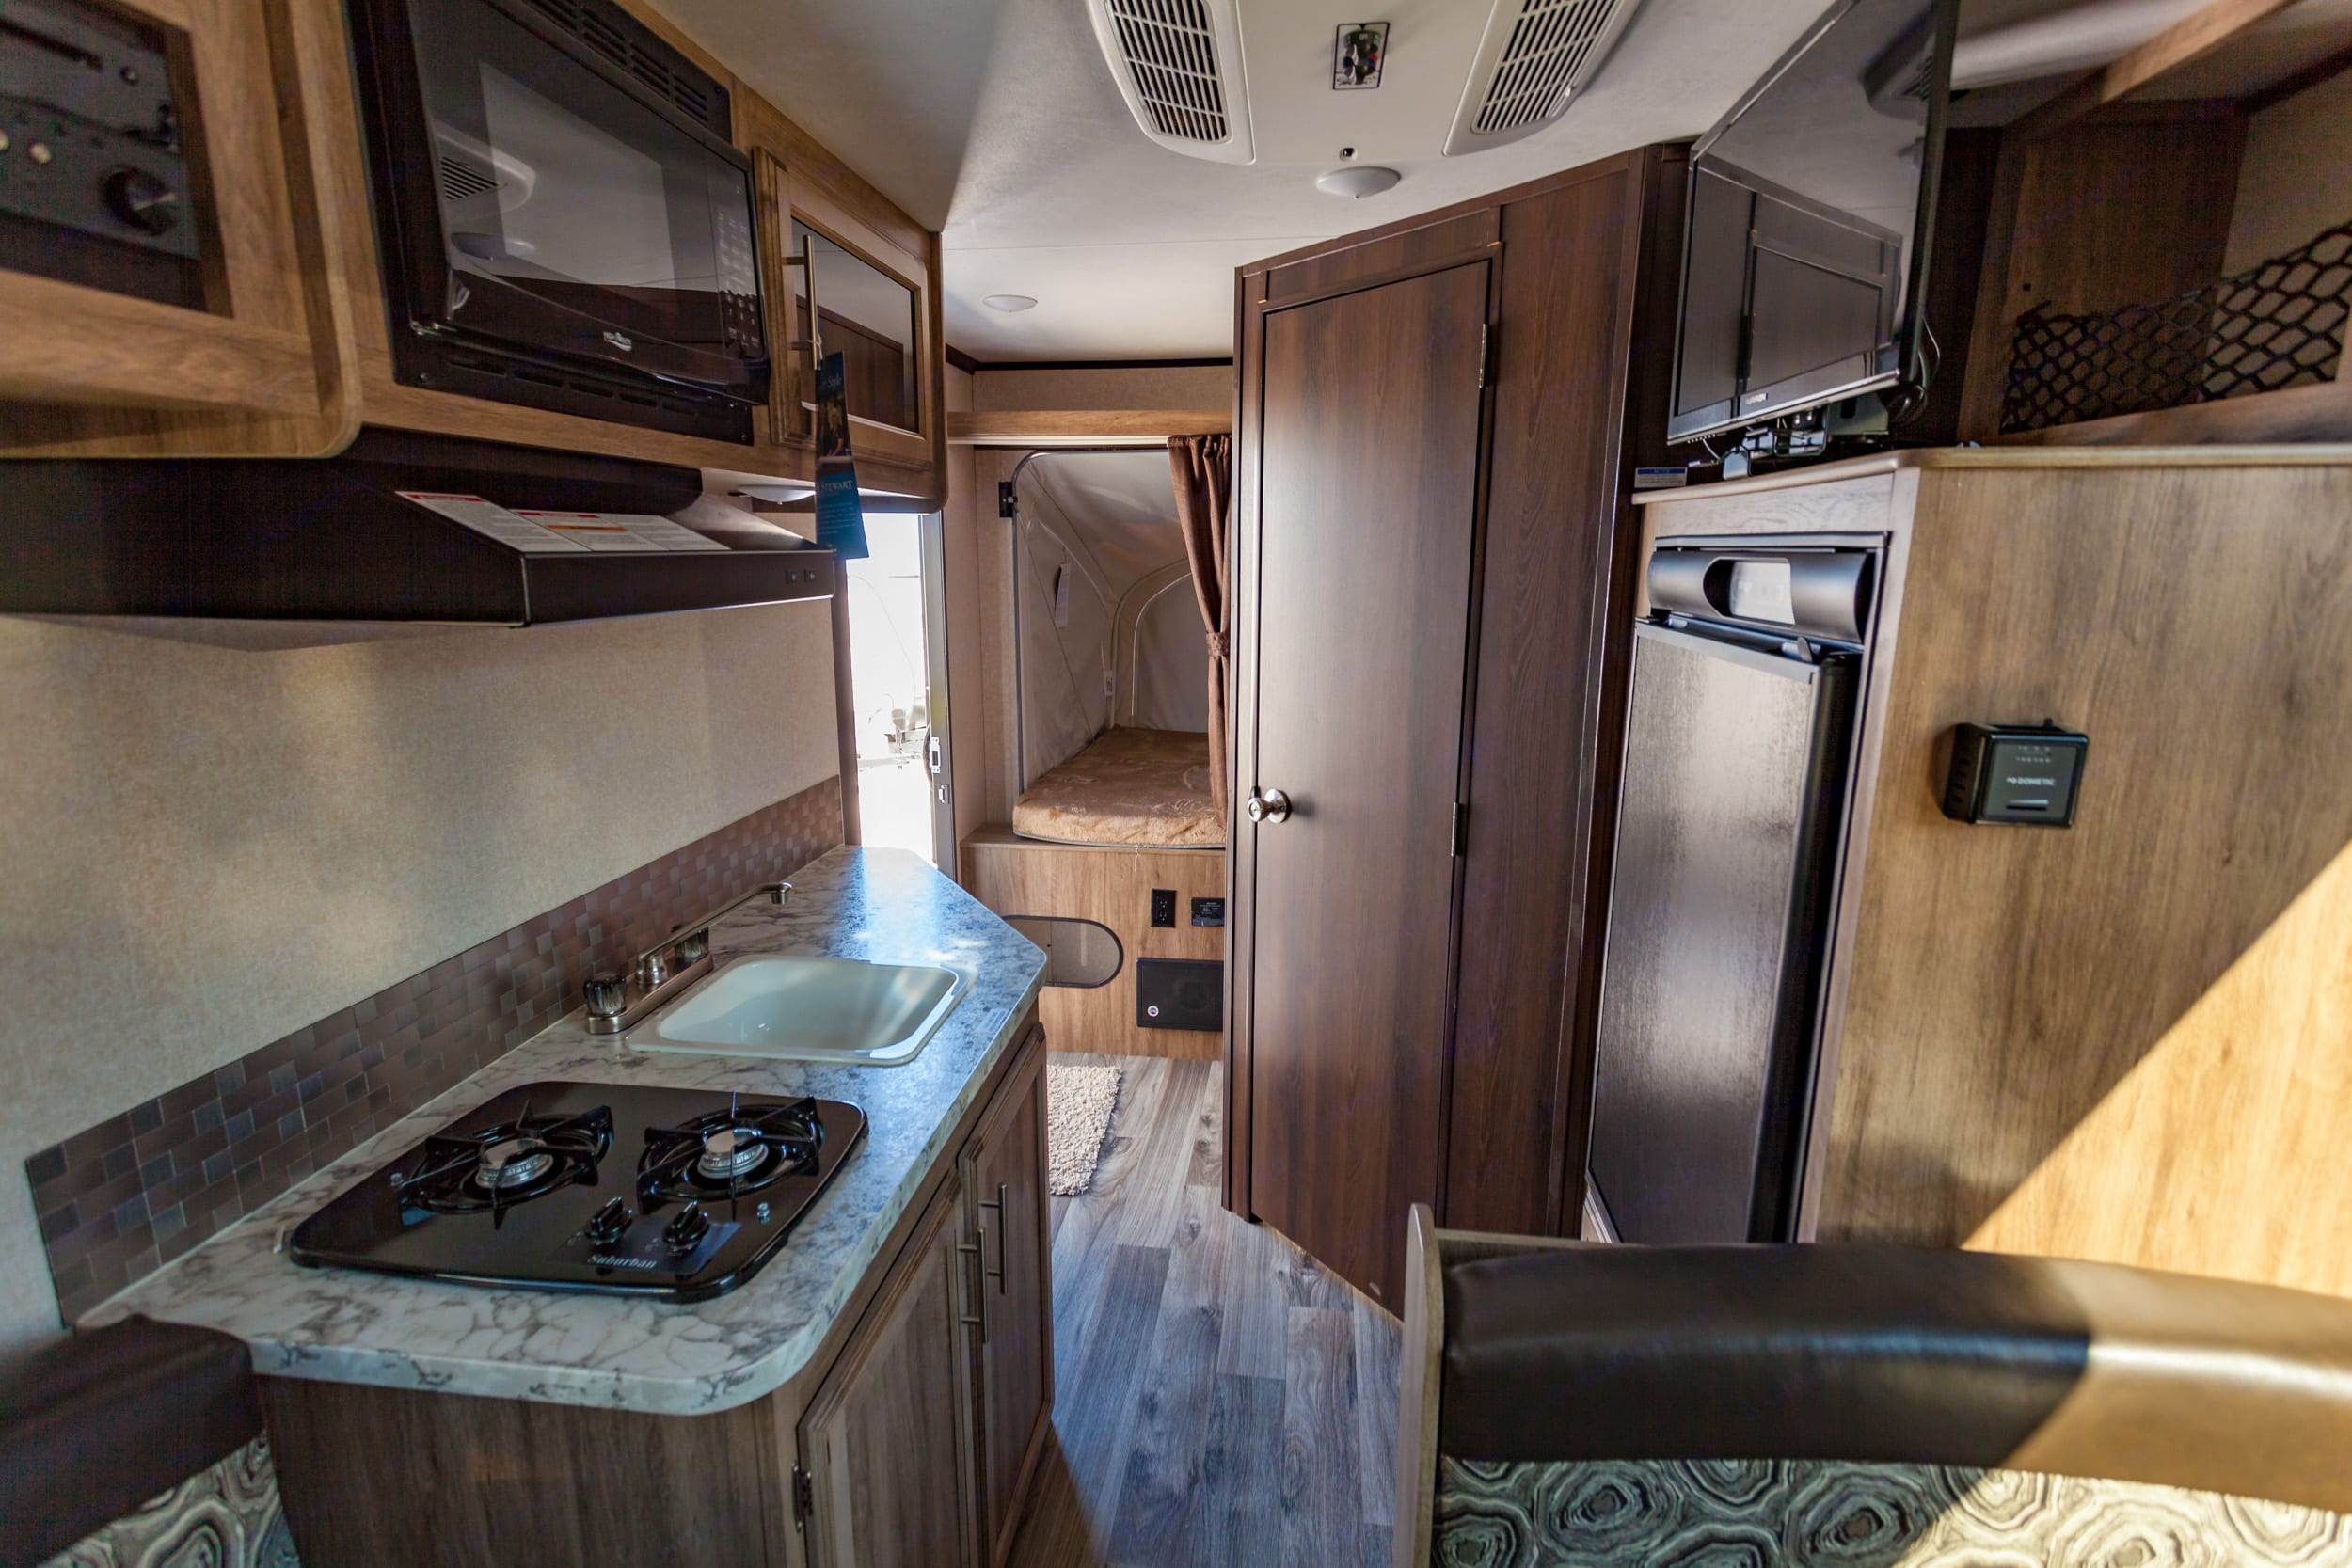 Kitchen, entry, bathroom on the right and one bed folded out in the back.. Jayco Jay Feather Ultra Lite 2017